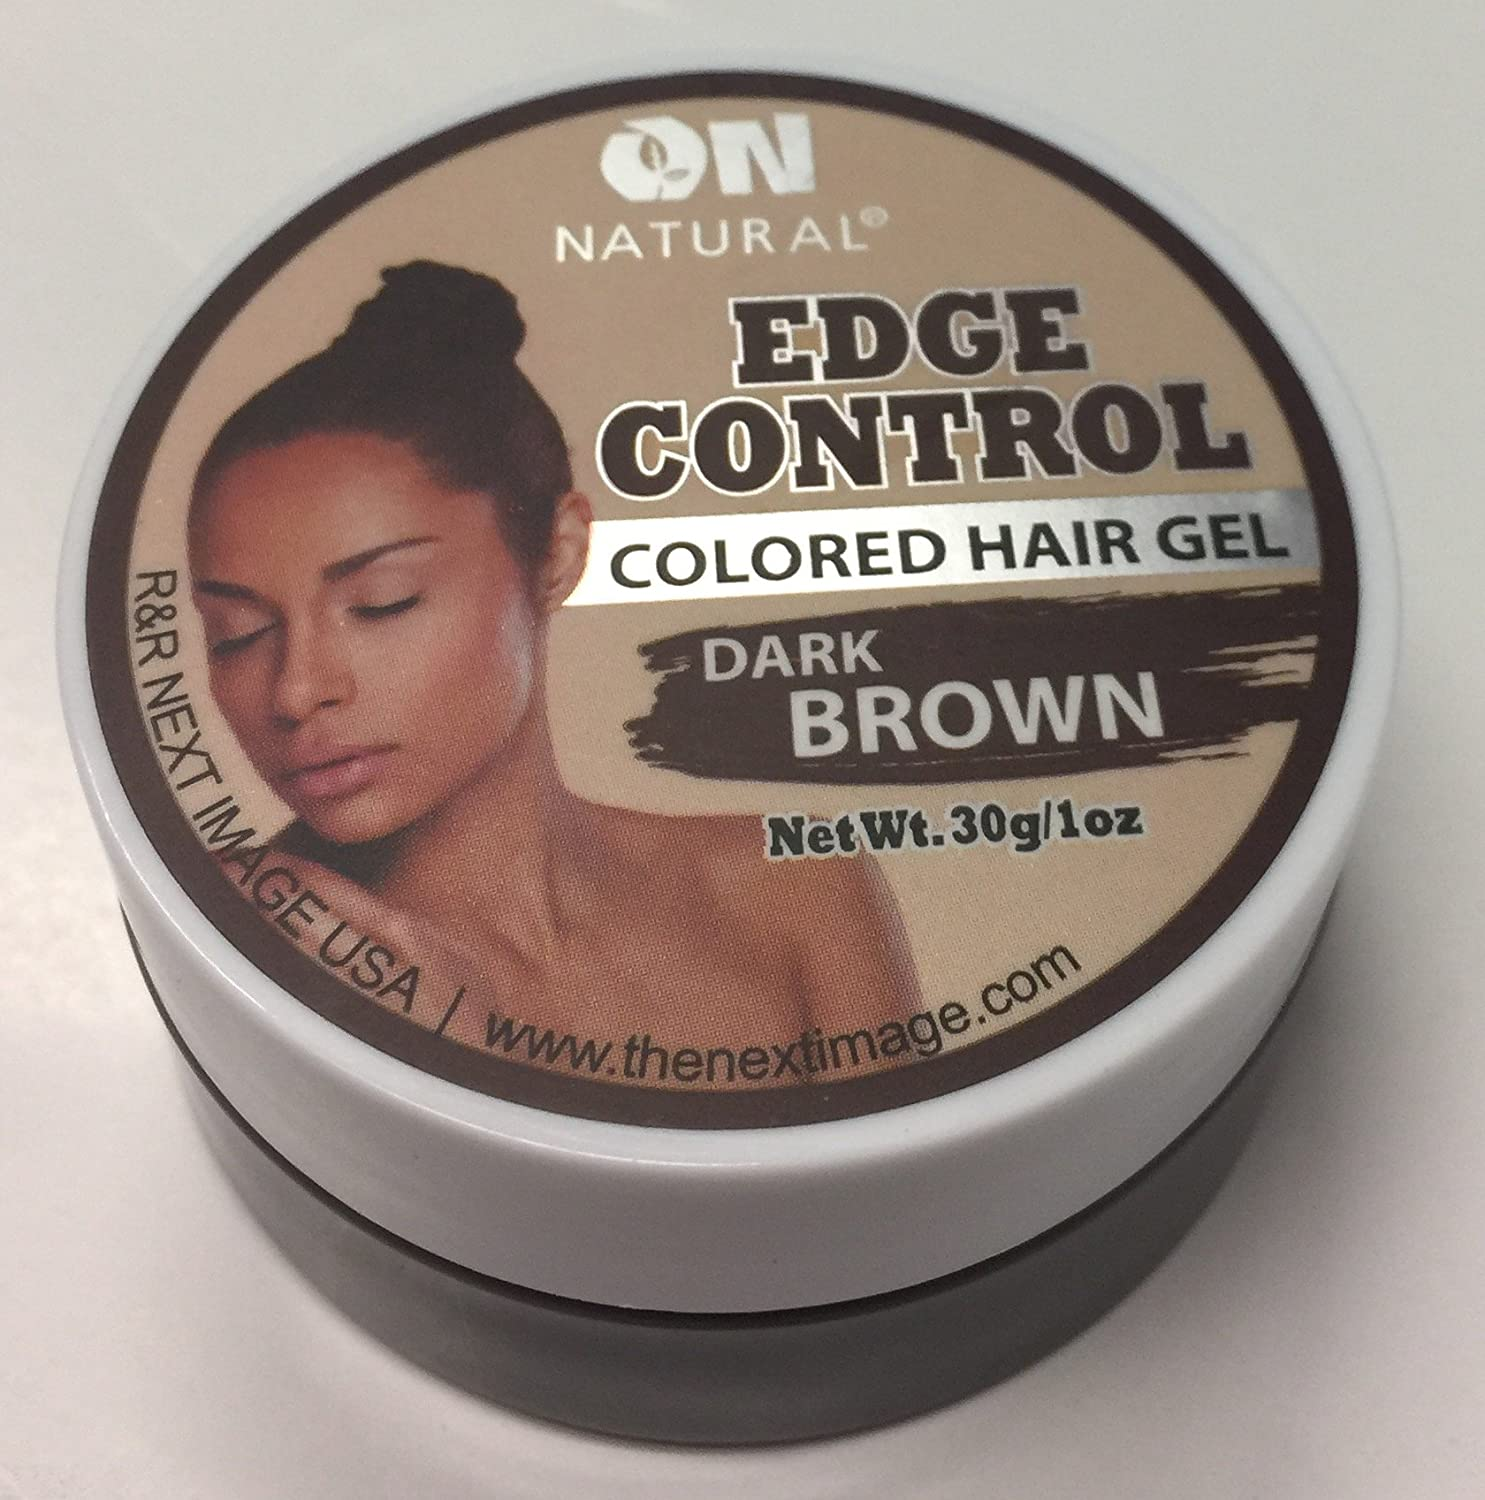 On Natural Edge Control Hair Colored Gel, Dark Brown, 1 Ounce